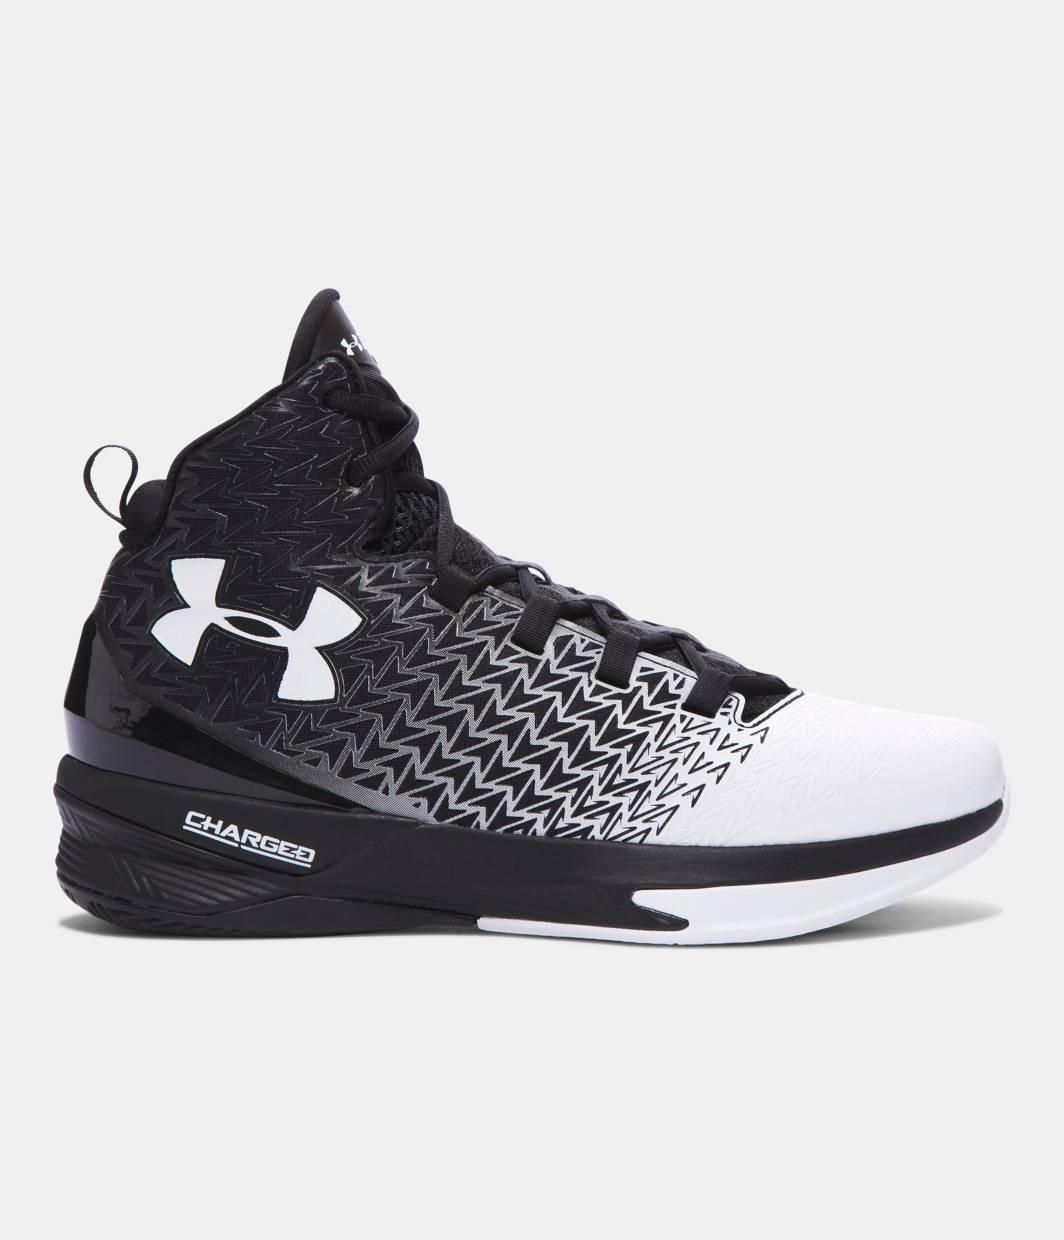 4cf3e377ccd Tênis Basquete Masculino Under Armour Clutch Fit Drive Mid 3 ...